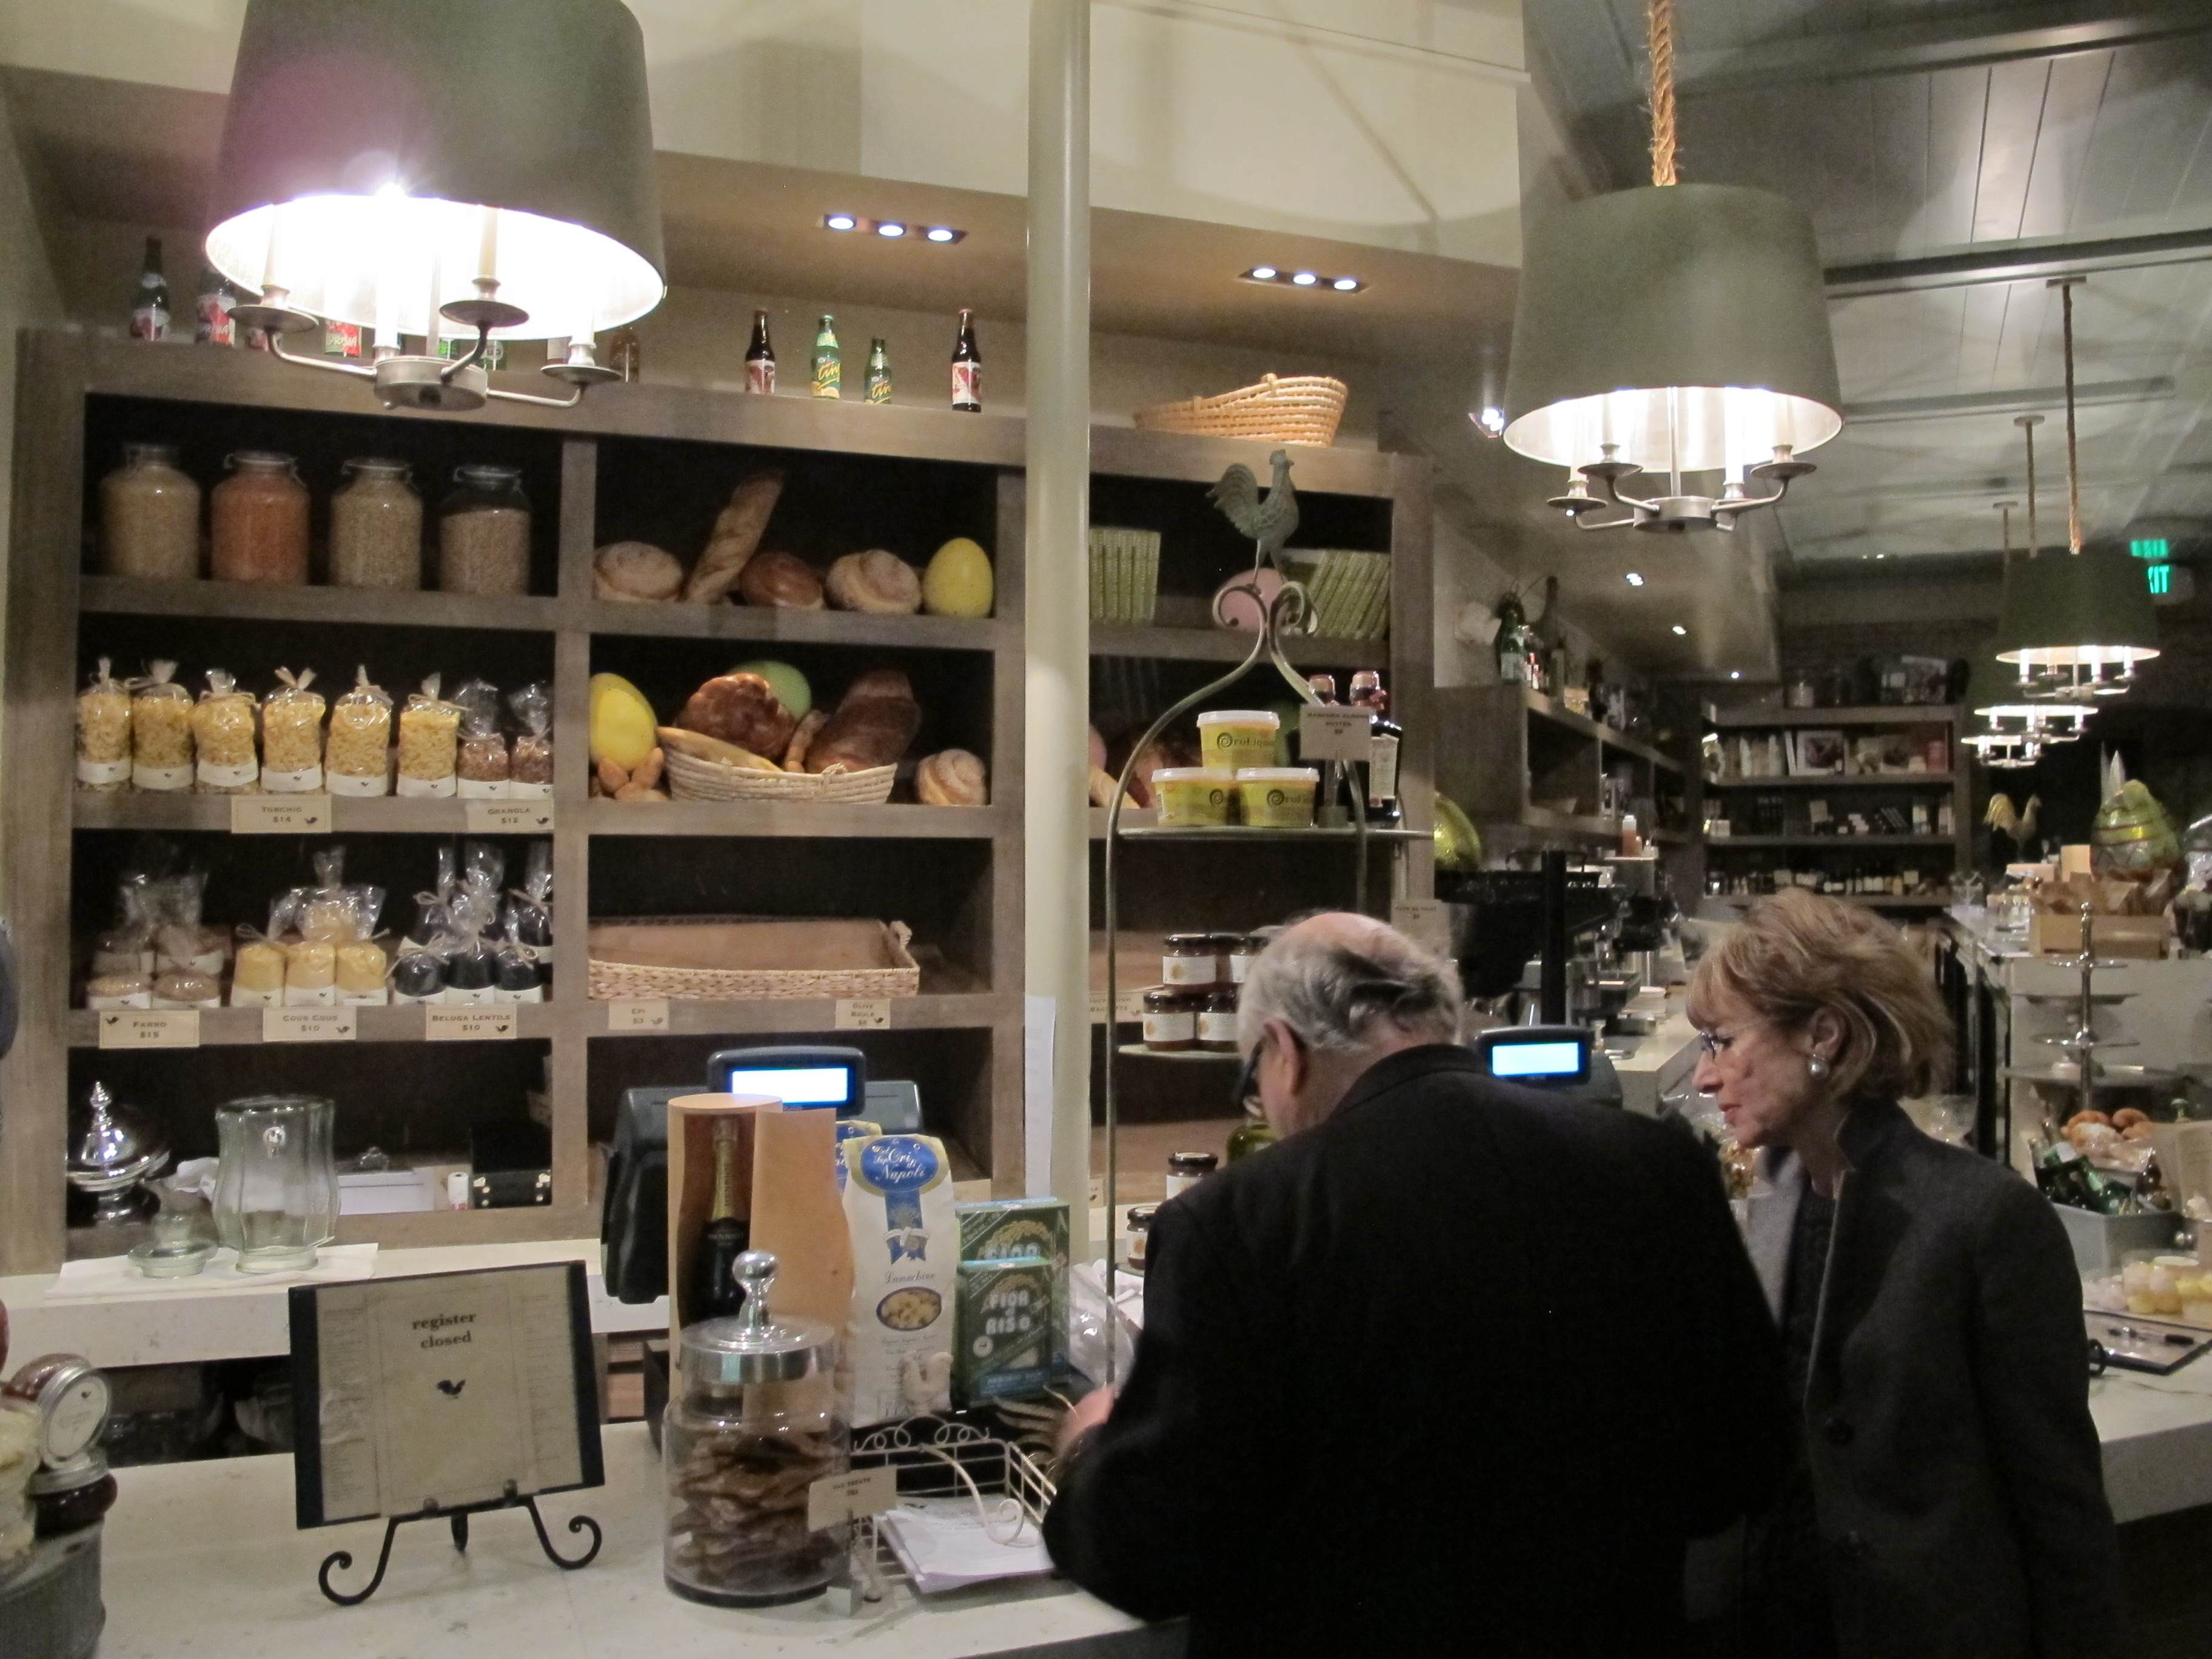 The Larder delicatessen inside Tavern in LA